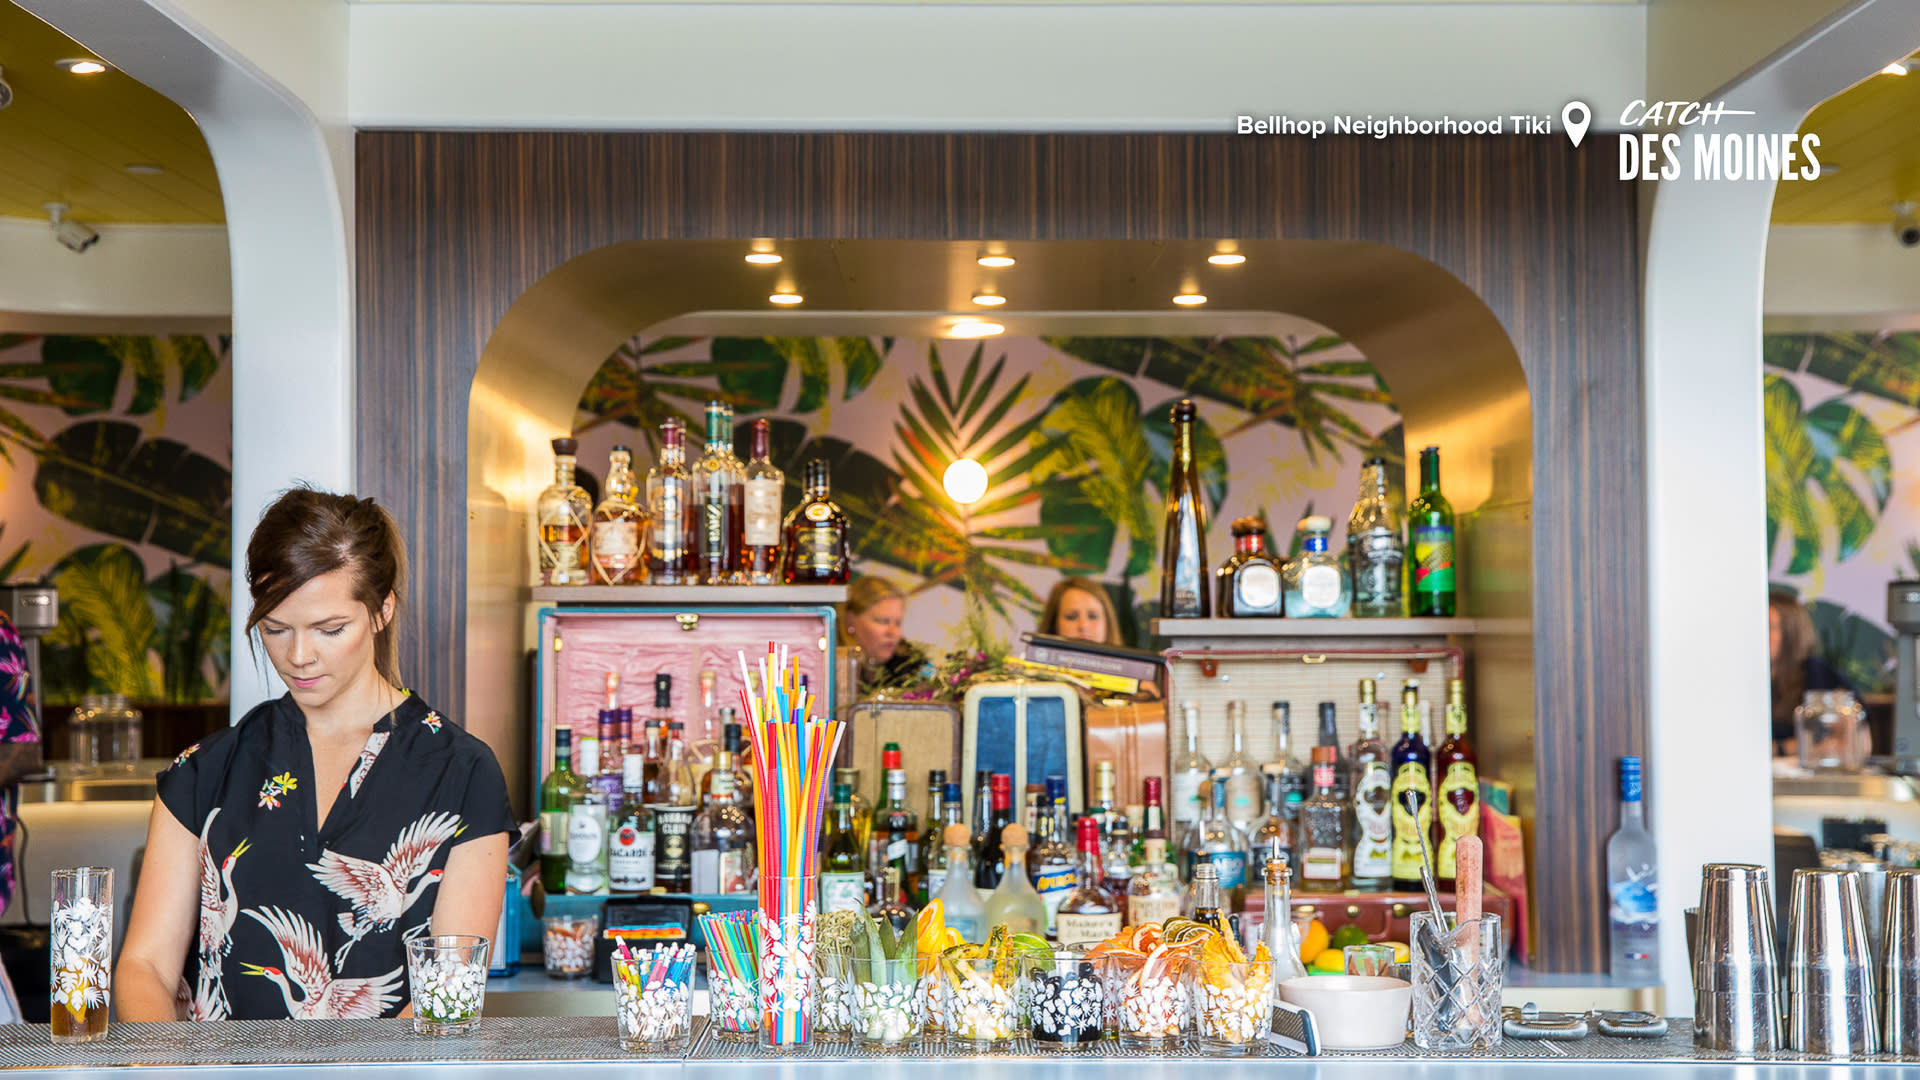 Bartender with Top Shelf Alcohol at Bellhop Tiki Zoom Background